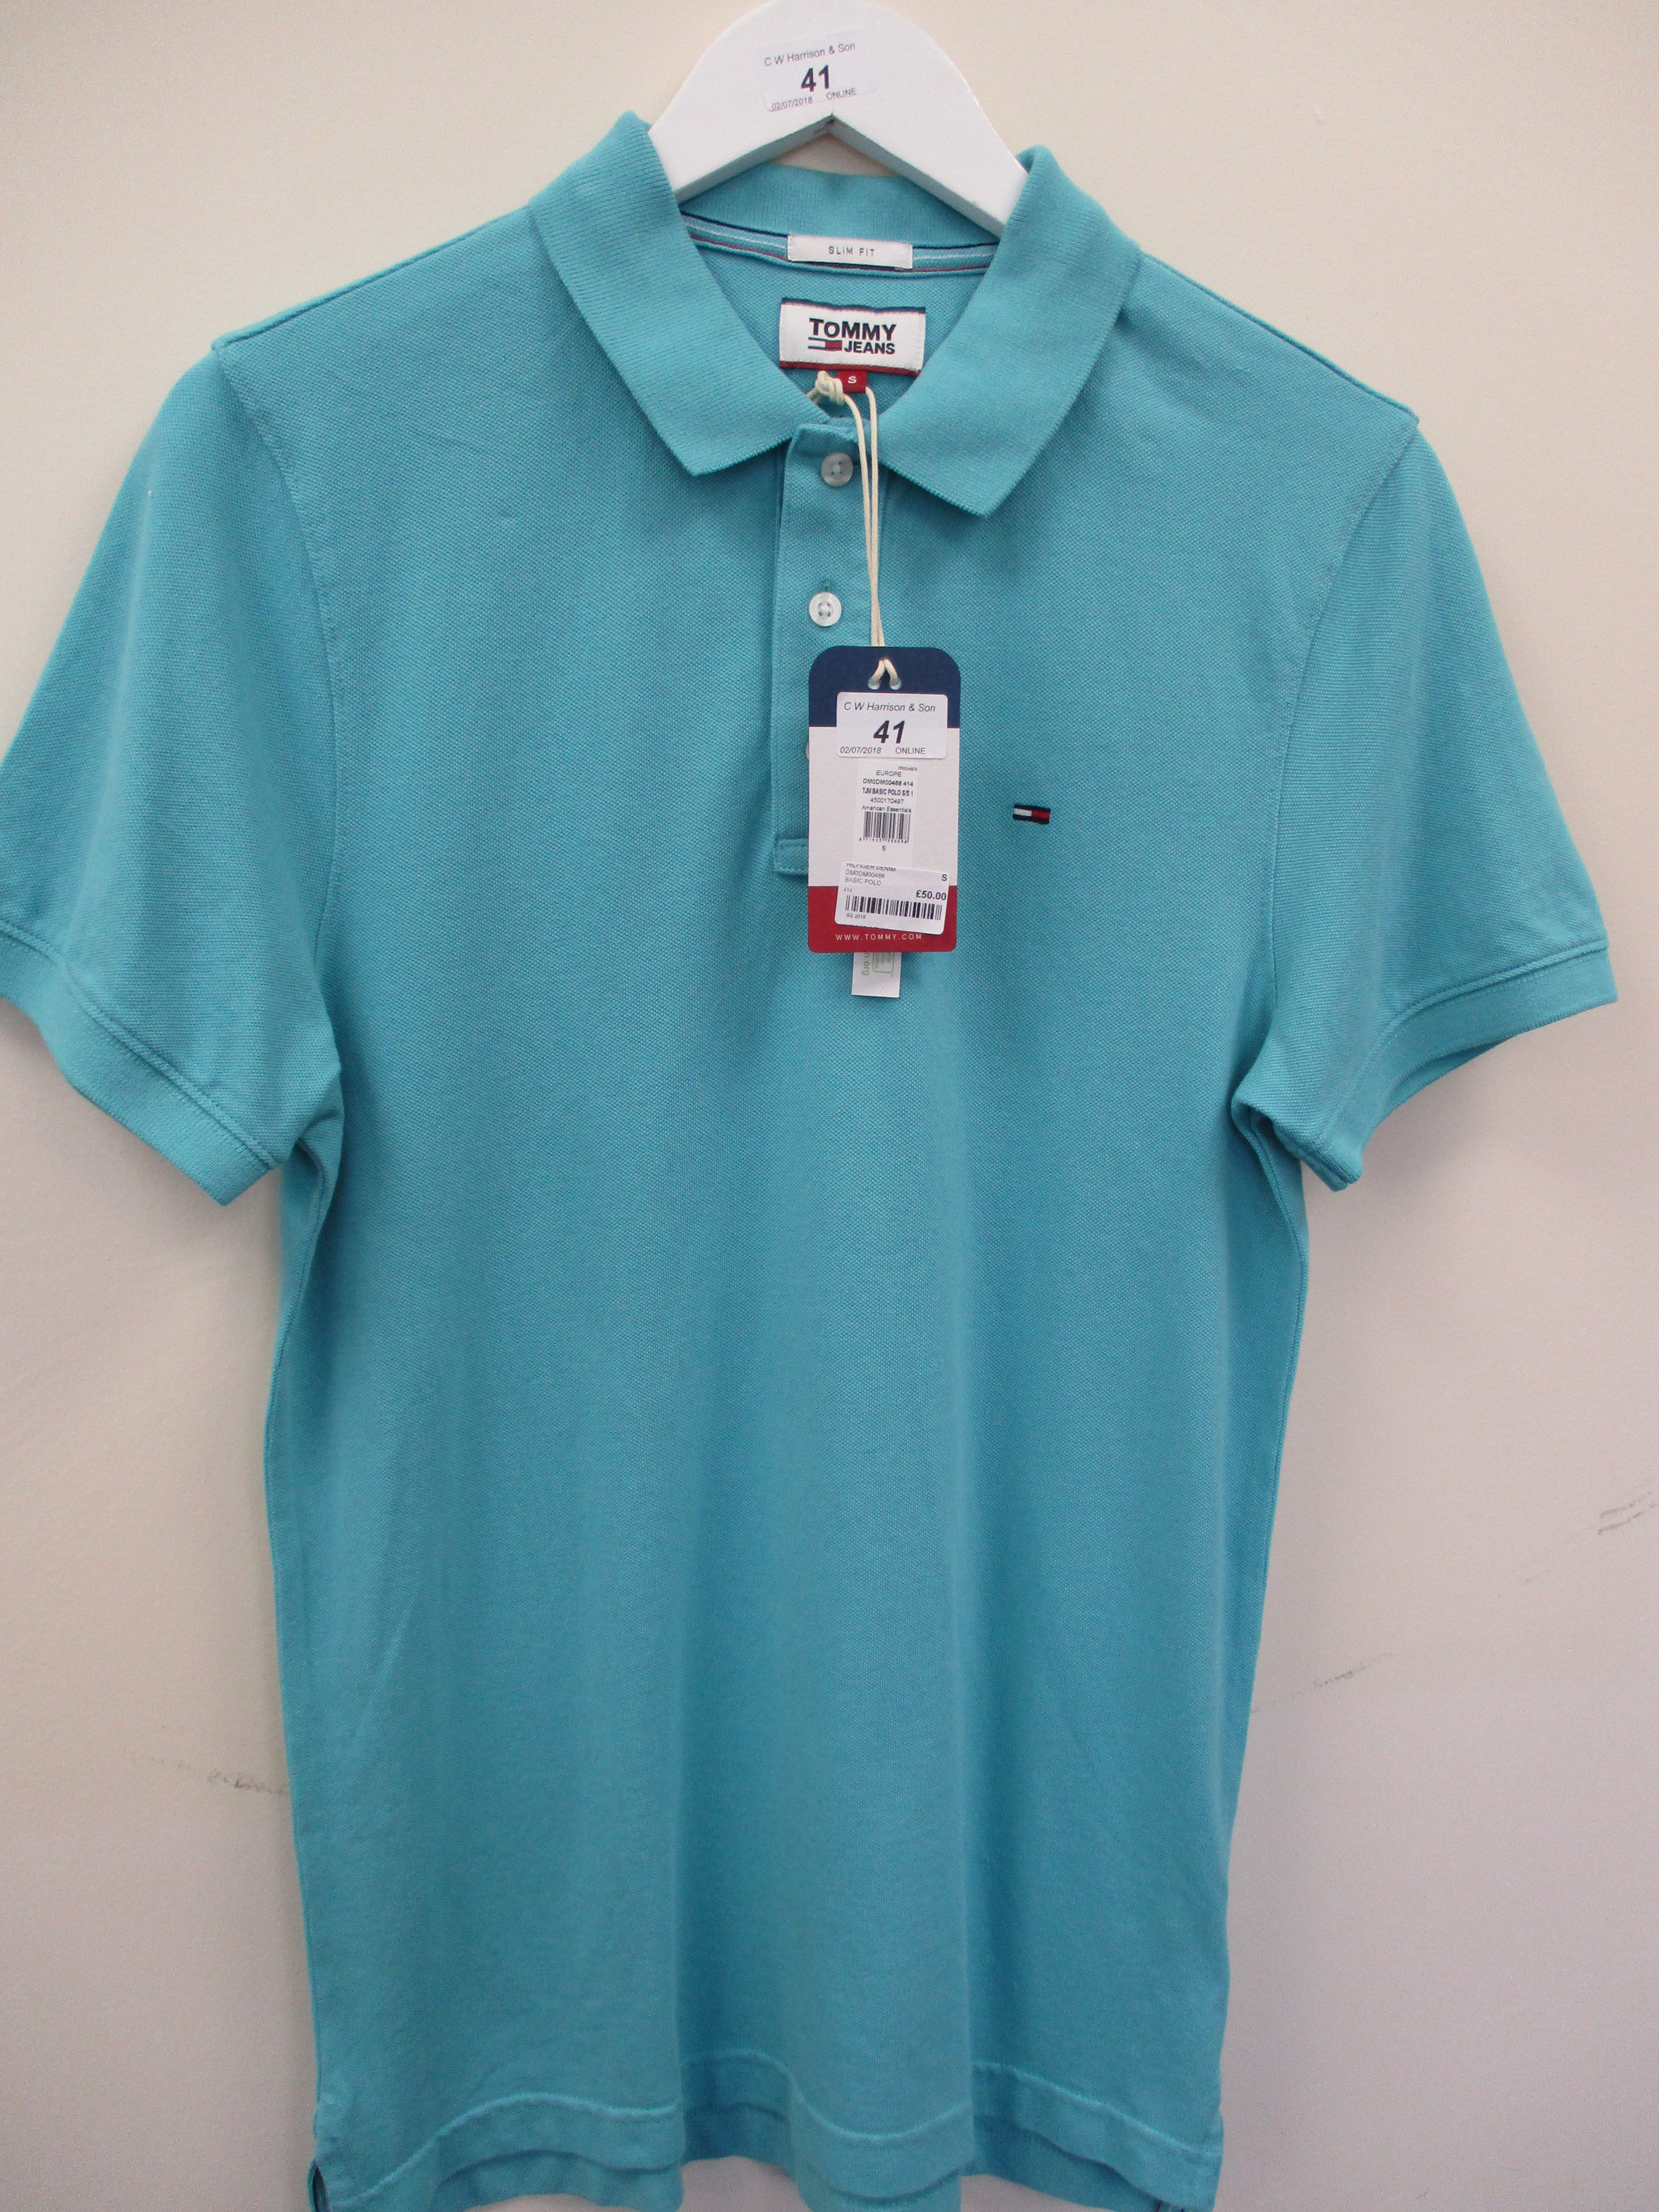 Lot 41 - Tommy Jeans by Tommy Hilfiger polo shirt - pale blue - small RRP £50